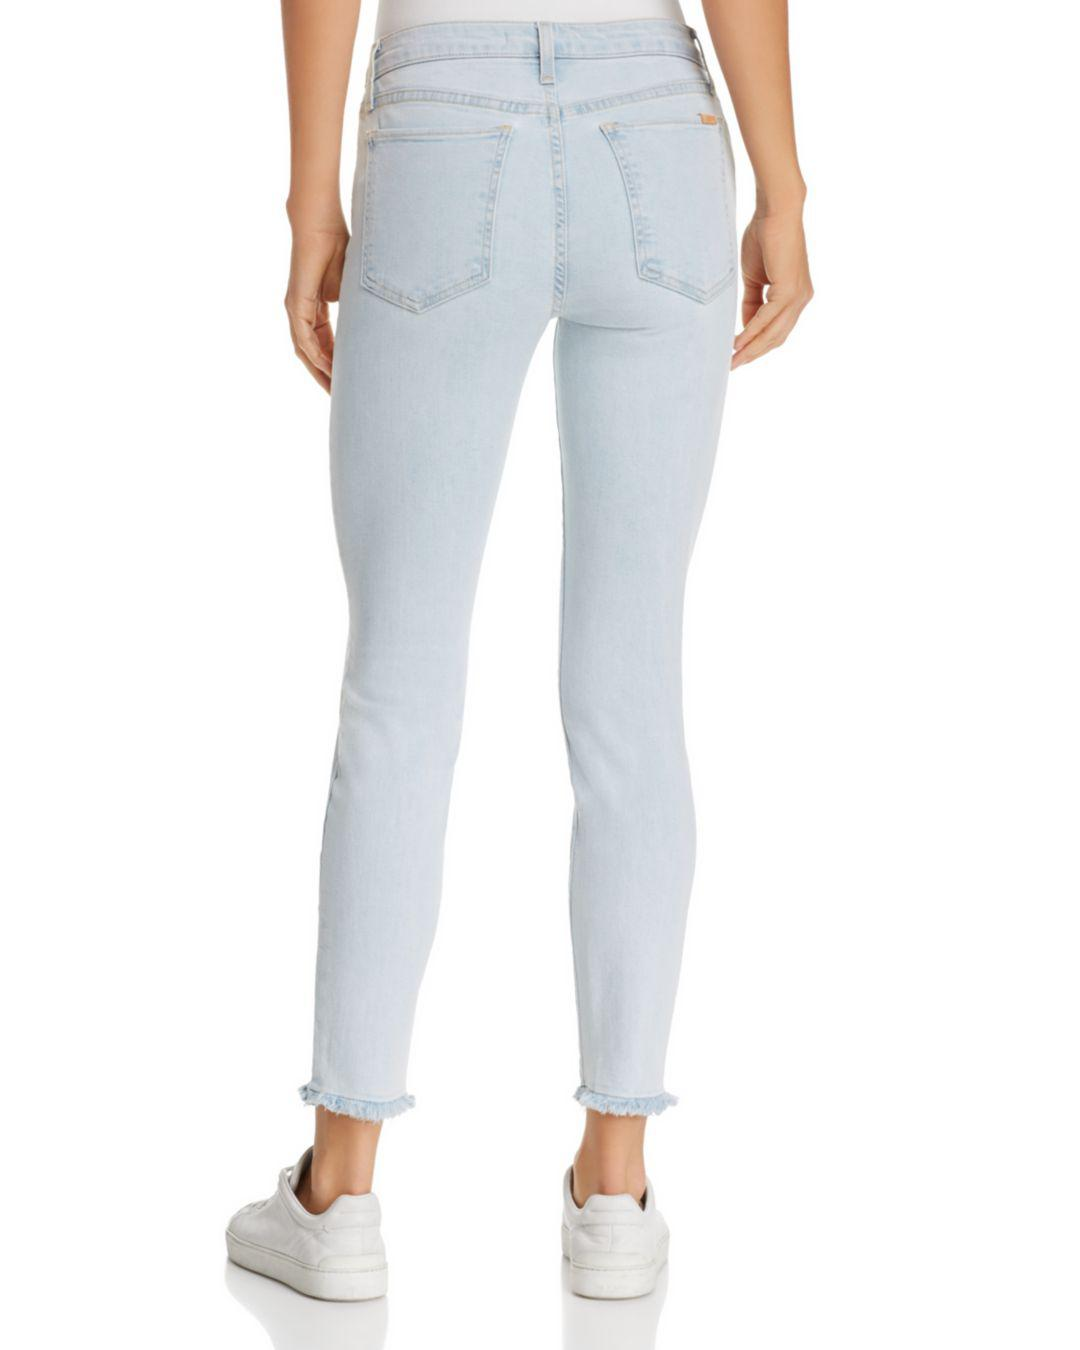 Joe's Jeans Denim The Charlie Ankle Jeans In Amada in Blue